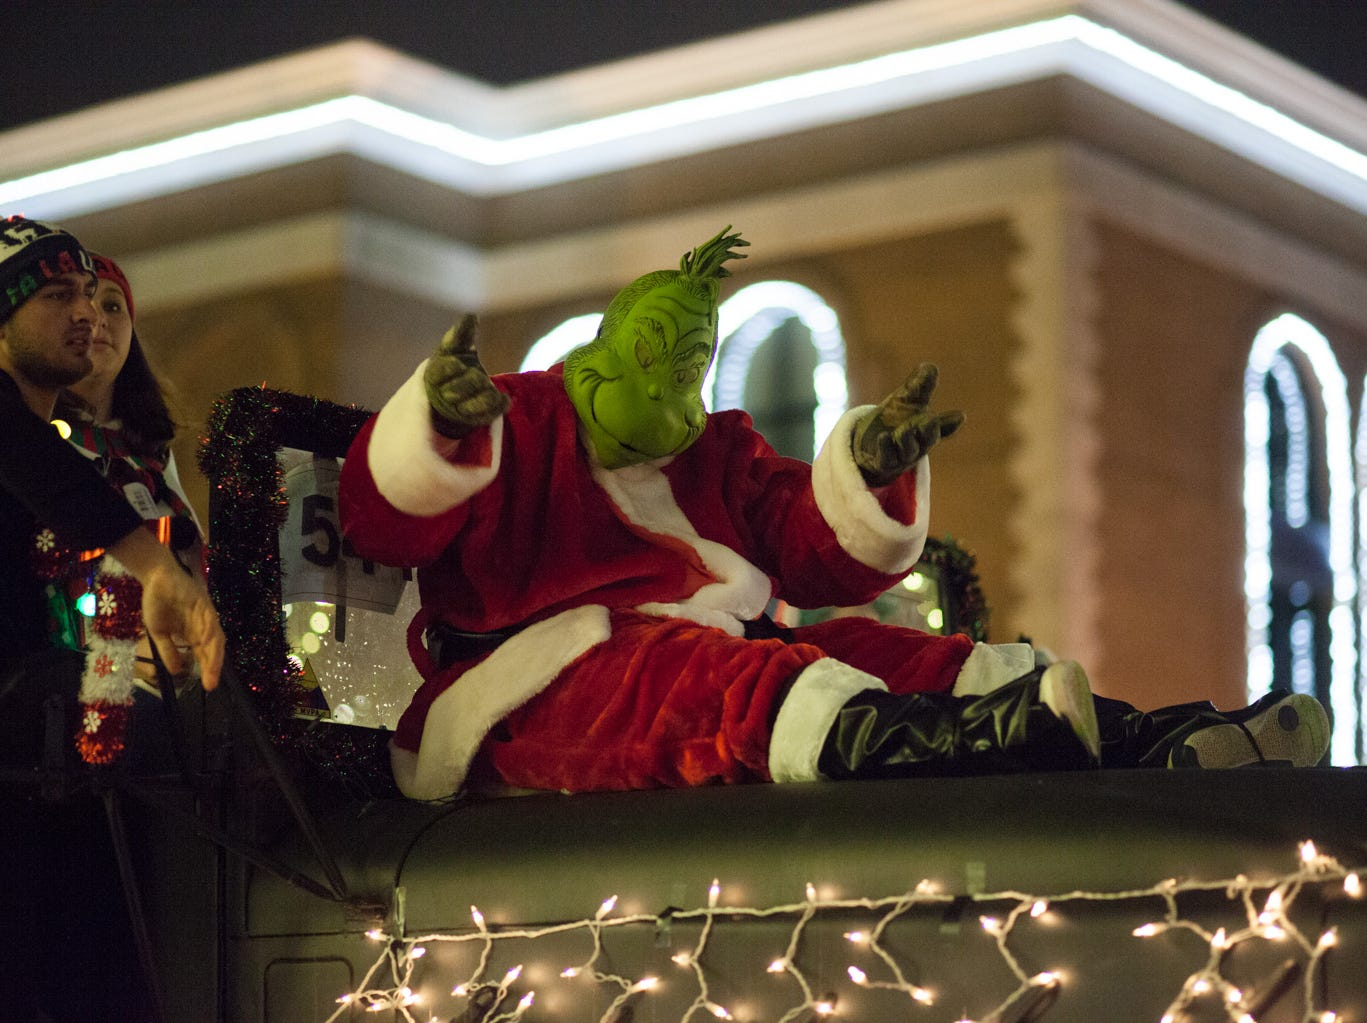 The Grinch passes Clarksville's City Hall as the Parade moves through Downtown on Saturday, Dec. 1, 2018, in Clarksville, Tenn.